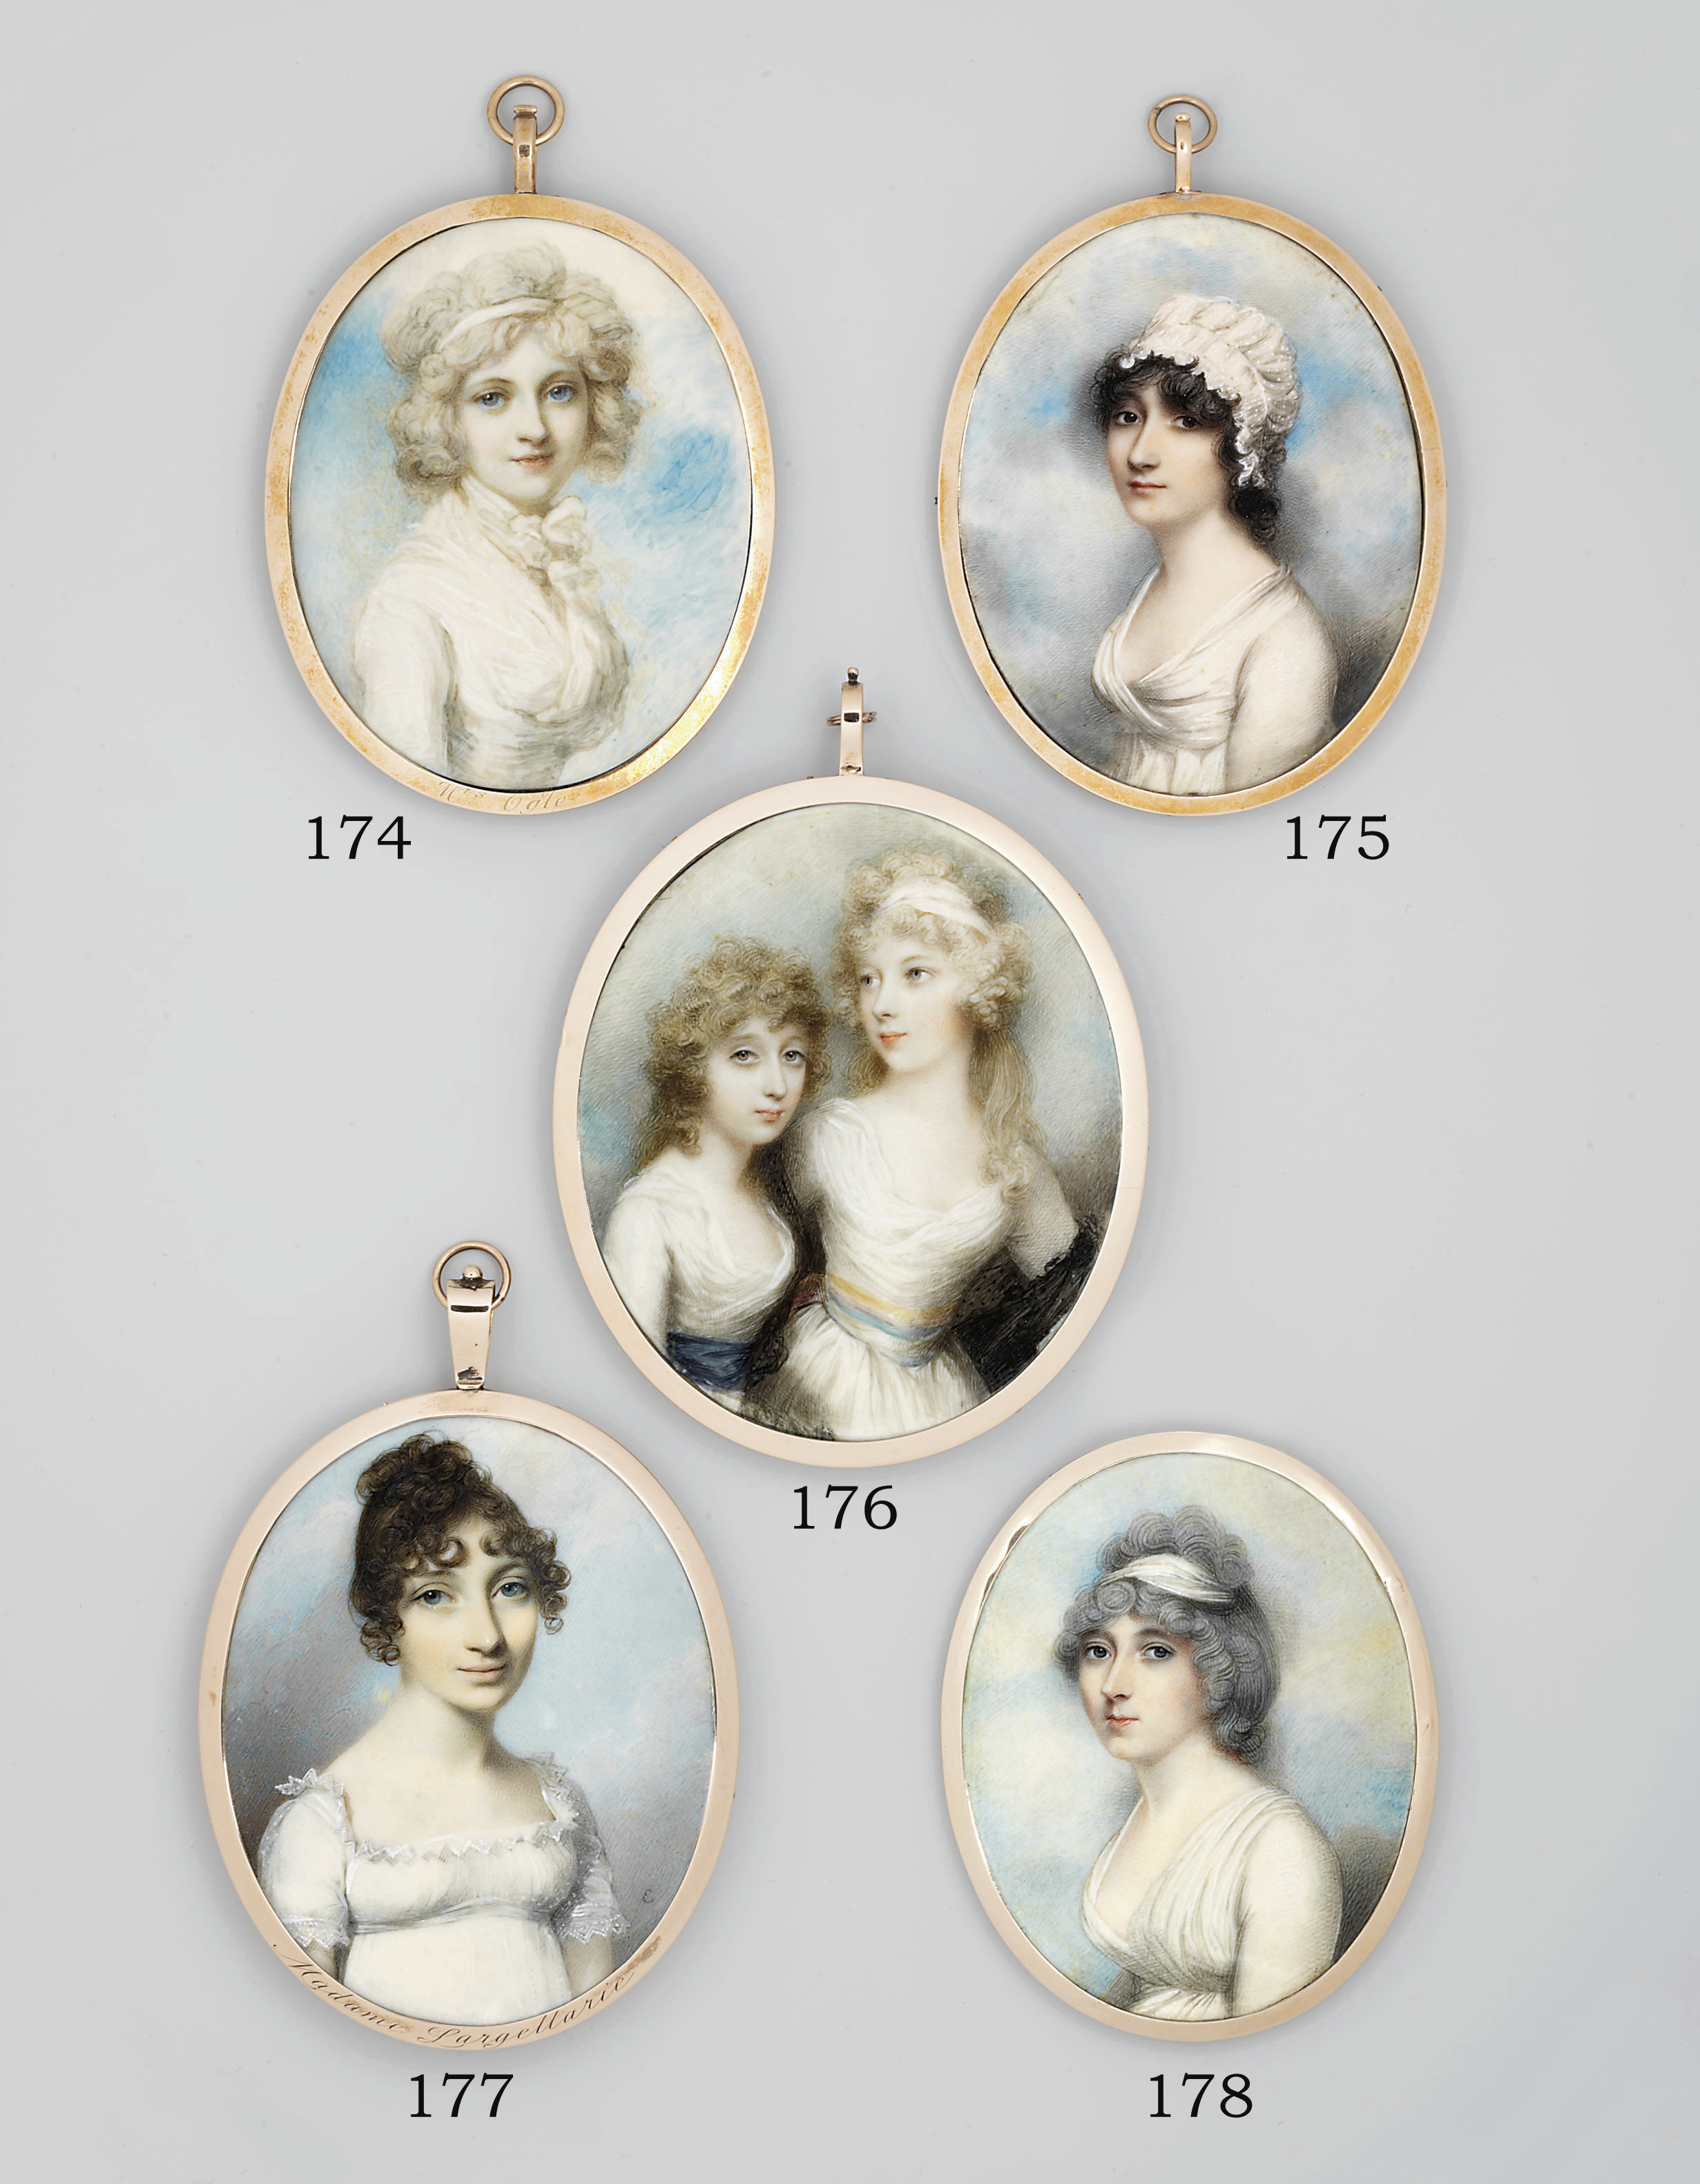 Lady Anne Hudson (1775-1826), in white dress with yellow, blue and white striped sash, a black lace stole over her arms, a white bandeau in her powdered curling hair, with her sister, the Duchess of Leeds (1776-1856), in white dress with dark blue sash, curling fair hair; sky background